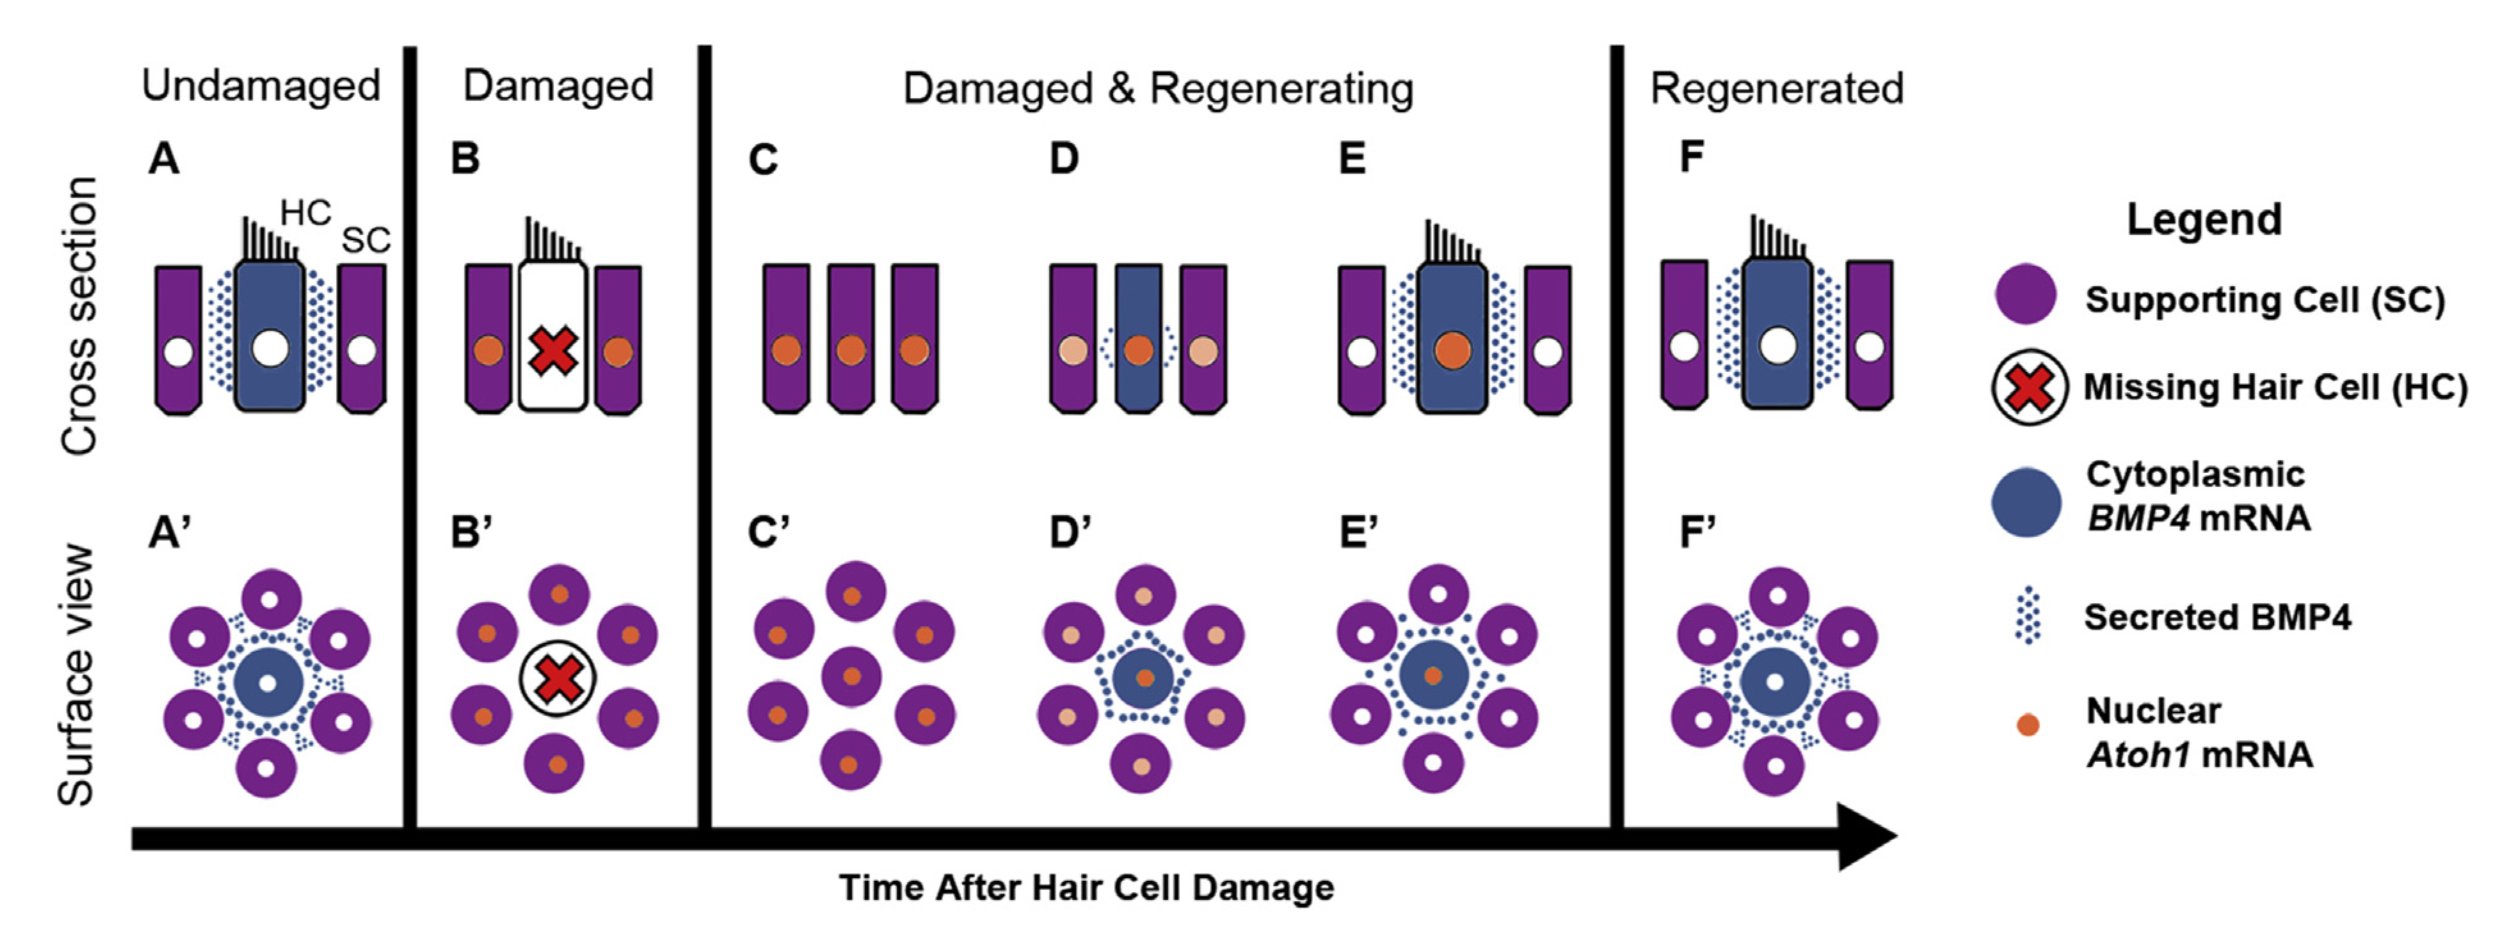 This schematic depicts our current ideas for how BMP4 regulates ATOH1 expression and therefore hair cell regeneration in the avian hearing organ. It shows (from left) typical hair cells, hair cell damage, and hair cell regeneration. Typical hair cells secrete BMP4. When hair cells die, BMP4 signaling is reduced, which allows ATOH1 to be expressed in supporting cells and pushes supporting cells to turn into hair cells. The newly regenerated hair cells secrete BMP4, suppressing ATOH1 in supporting cells and restoring the normal condition.